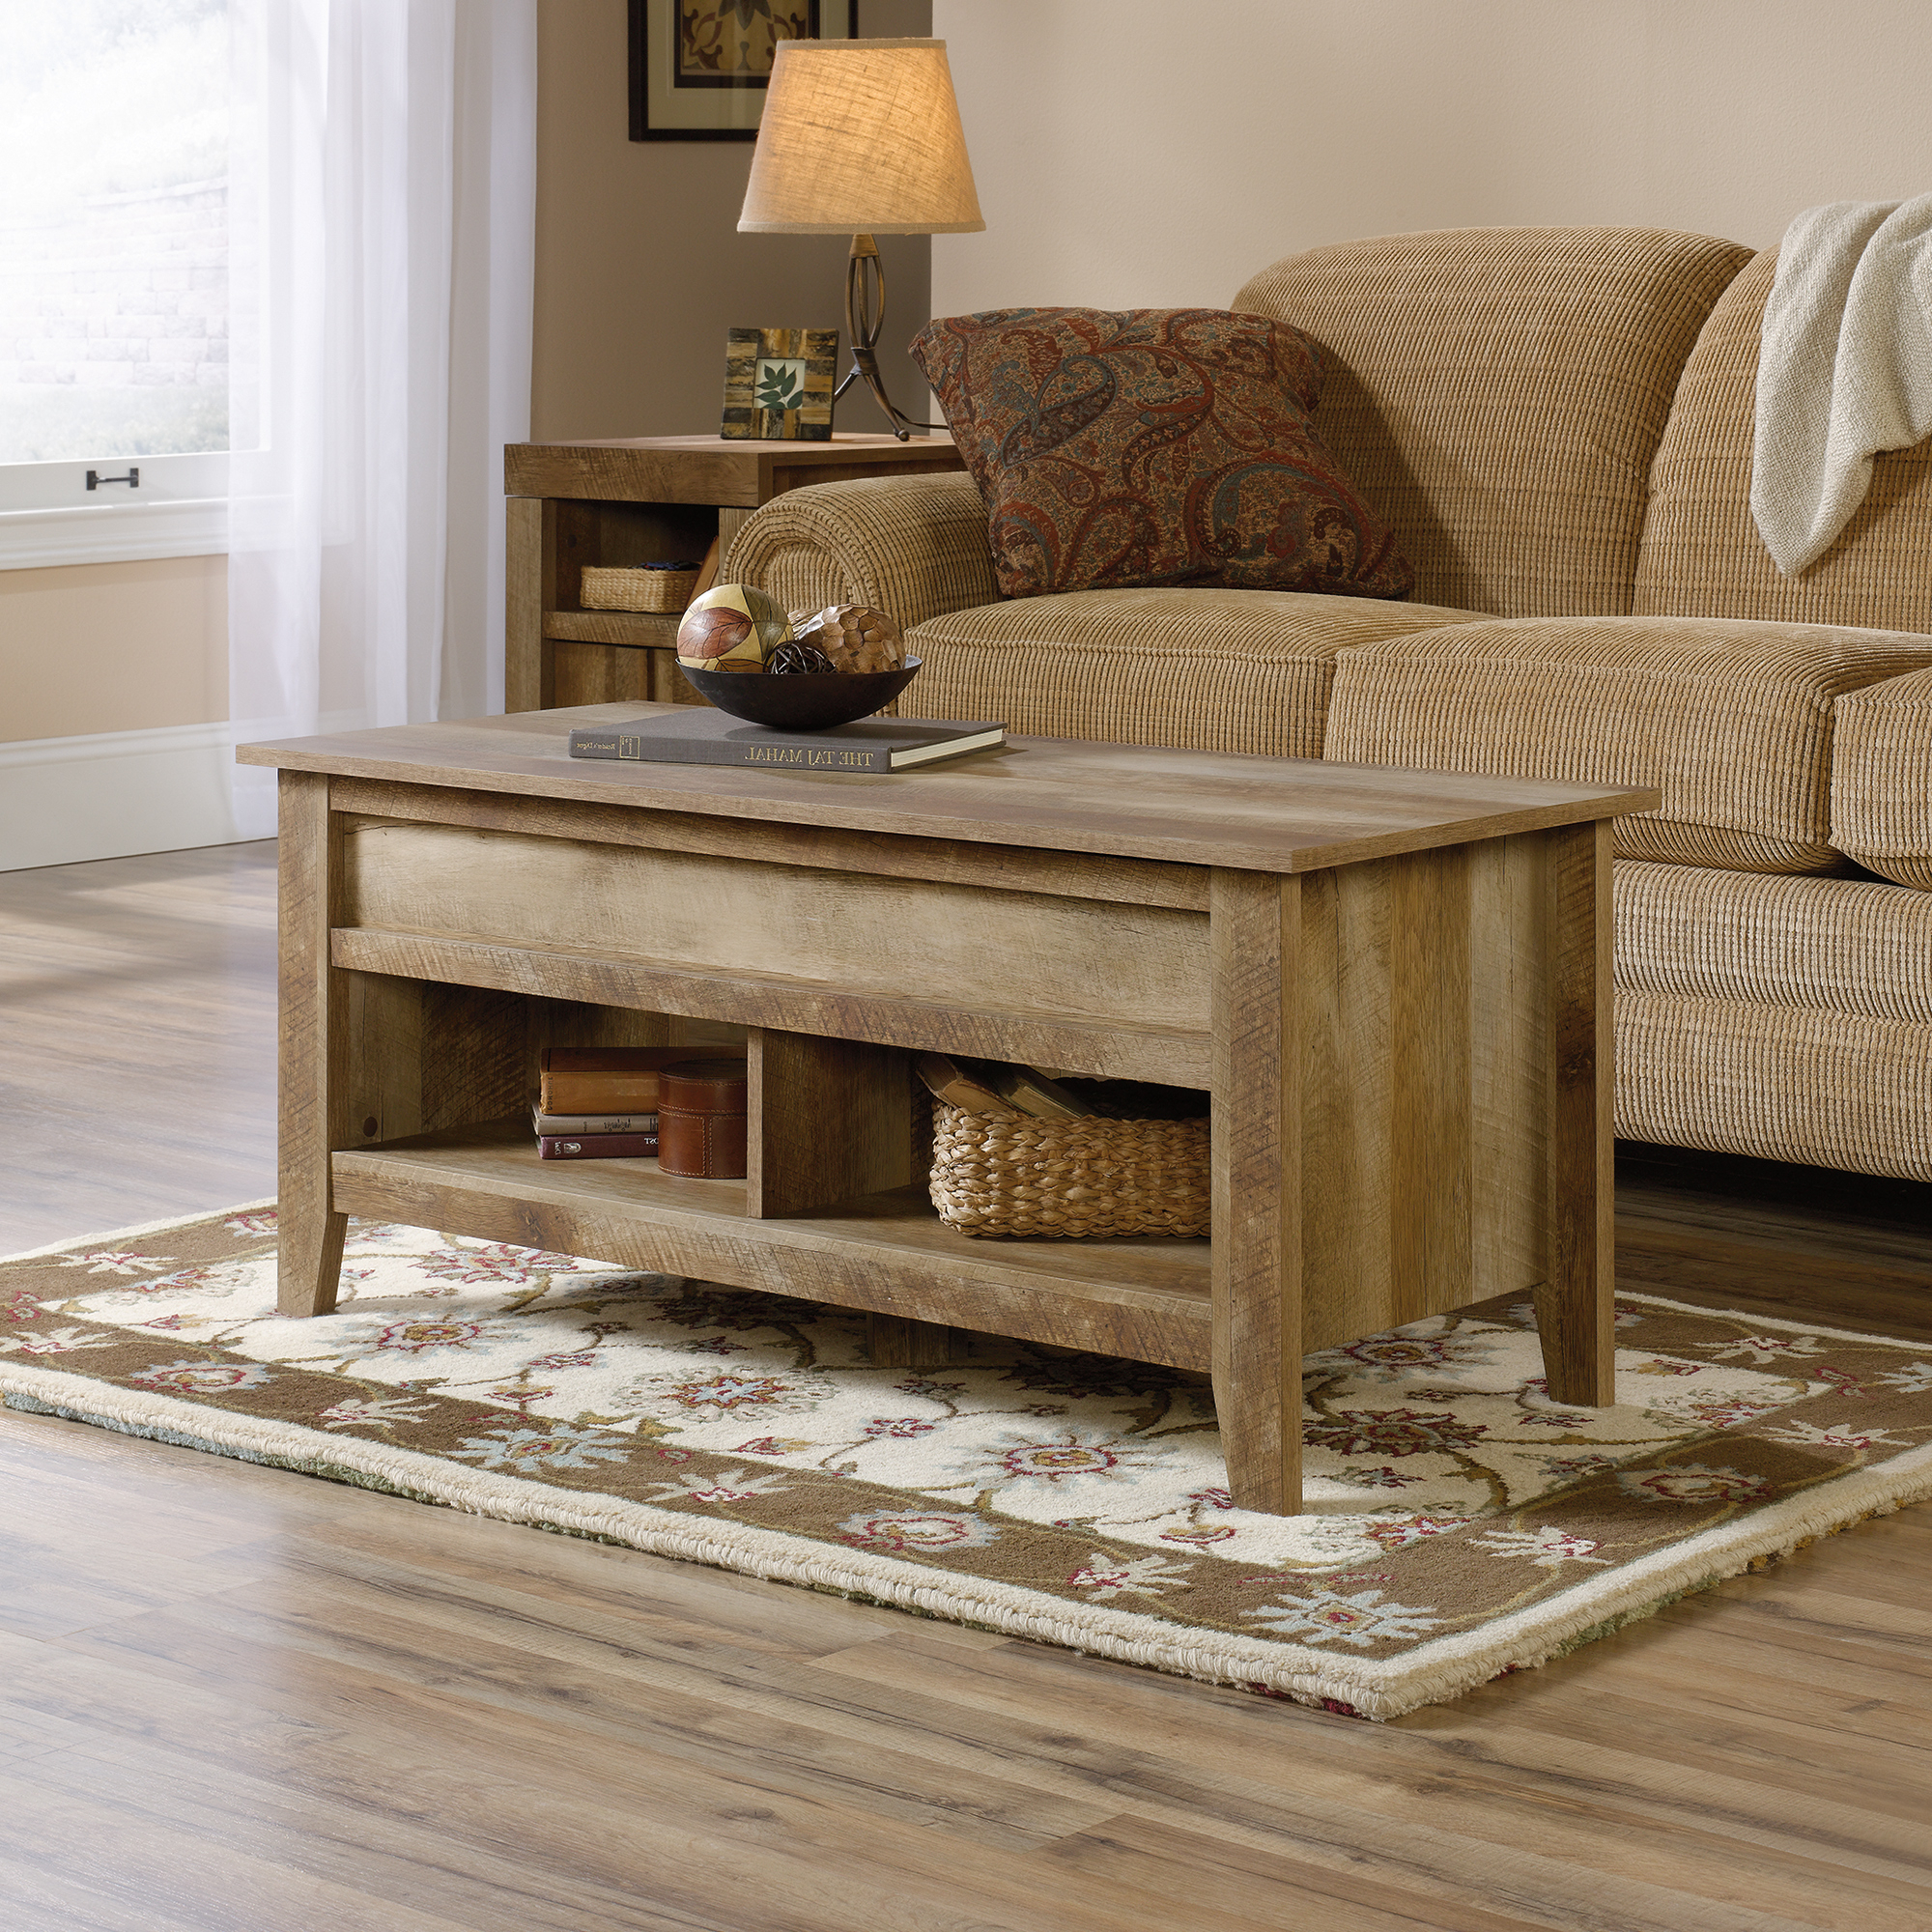 Craftsman Cocktail Tables With Well Liked Dakota Pass Rustic Coffee Table With Lift Top (420011) – Sauder (View 13 of 20)